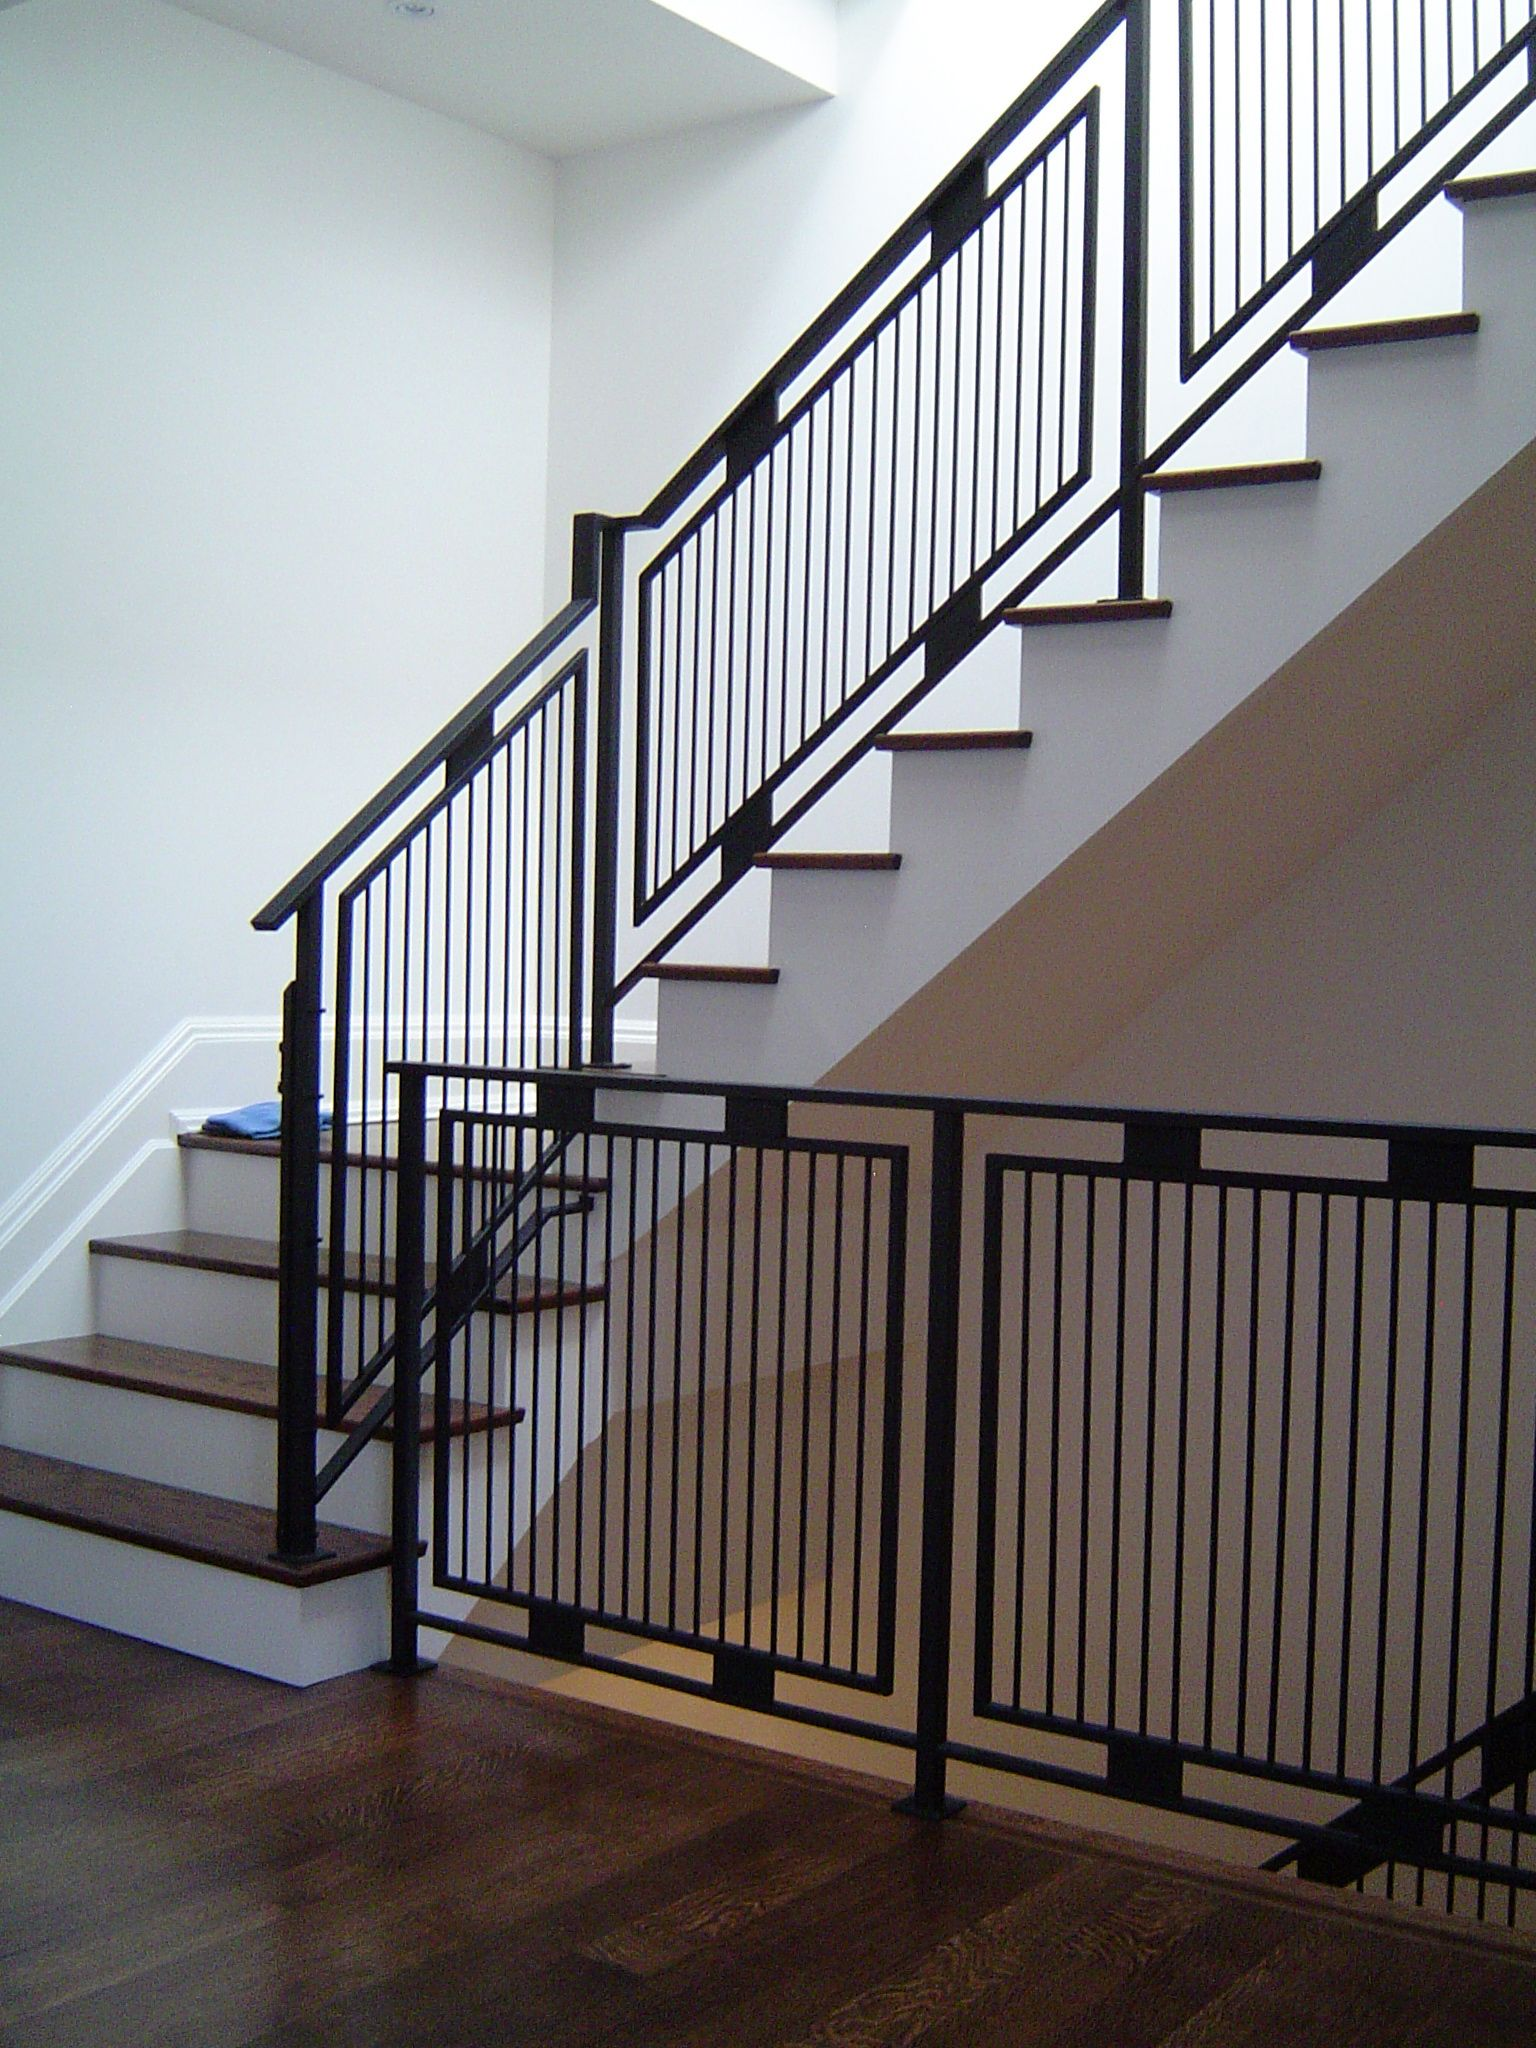 Best White Walls And Black Railing Www Thesteelworks Ca 400 x 300